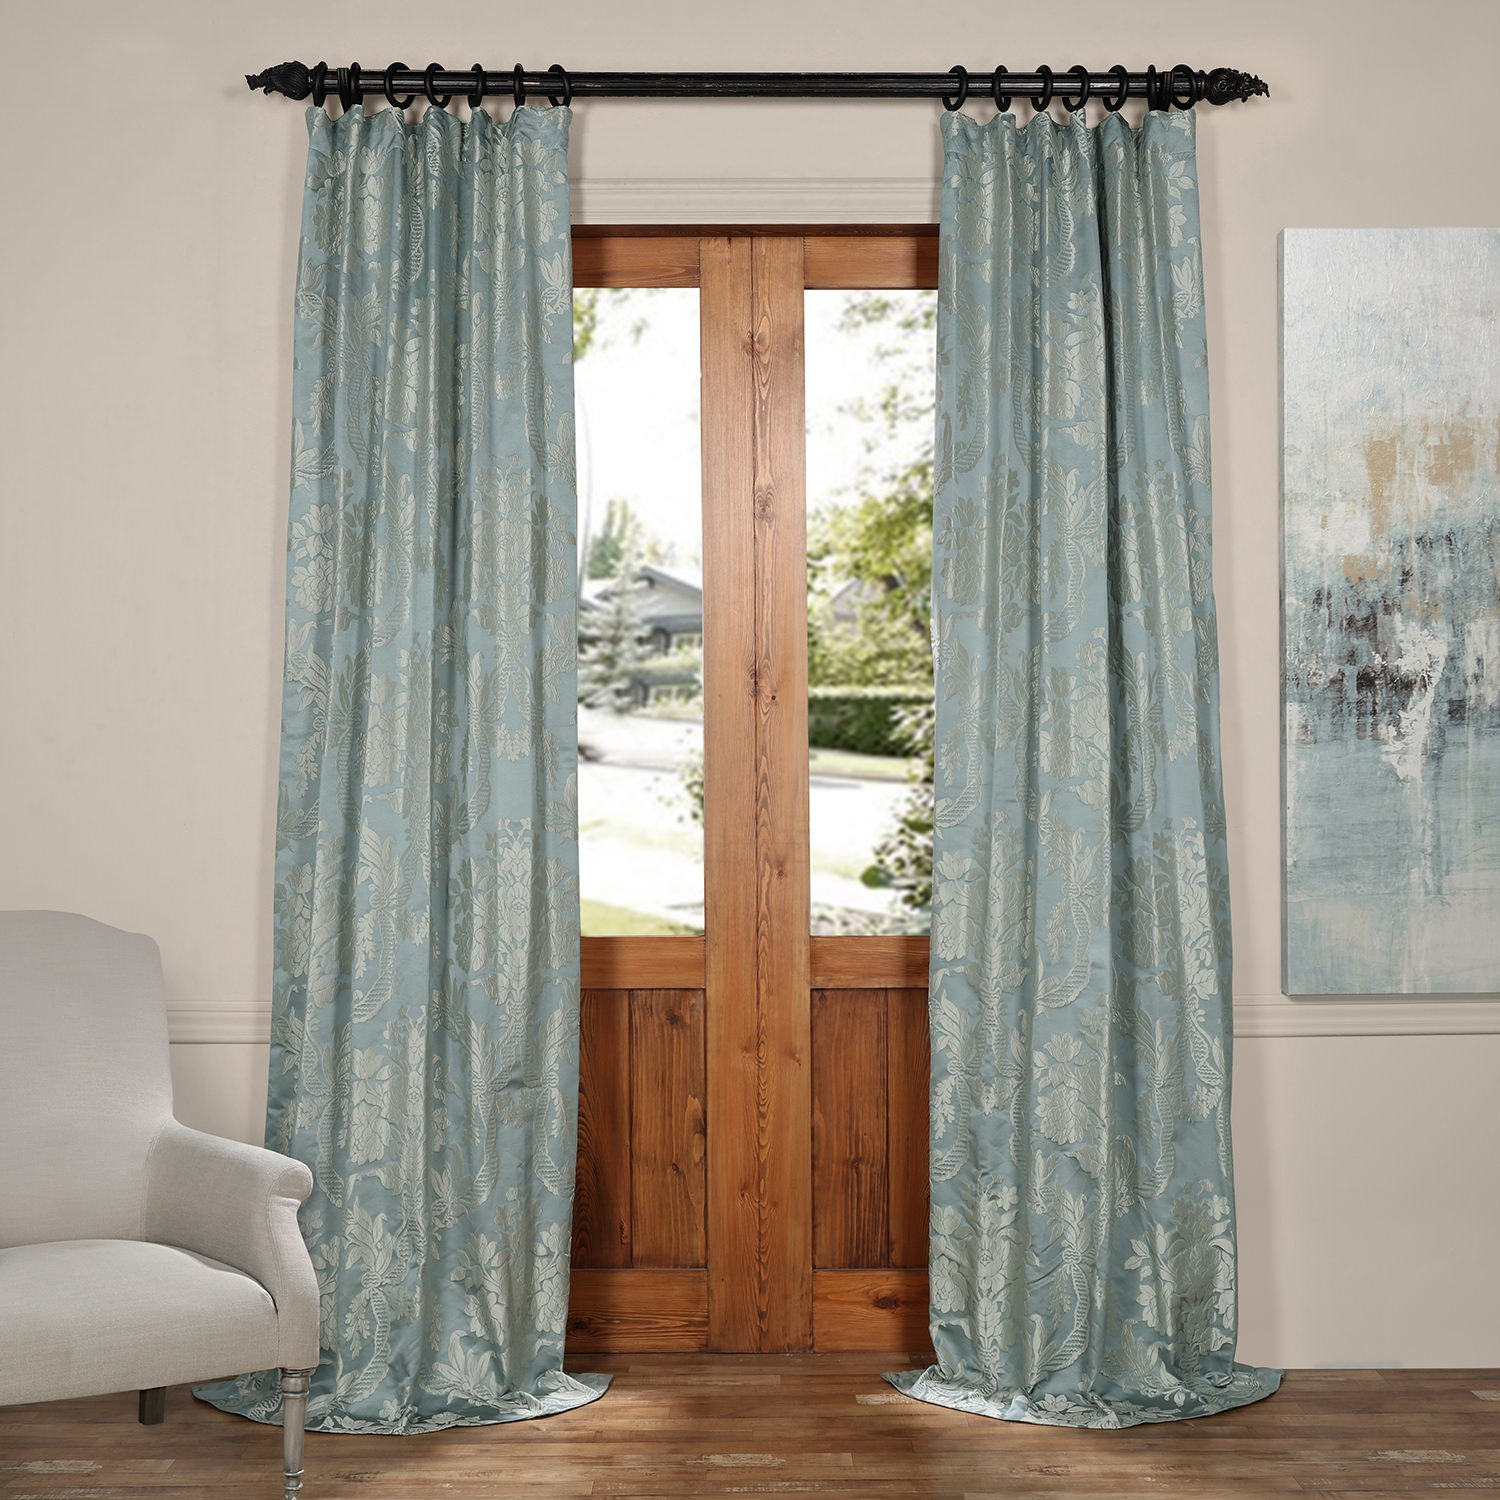 drapes faux treatment floral embroidered addison p window silk panel v curtain